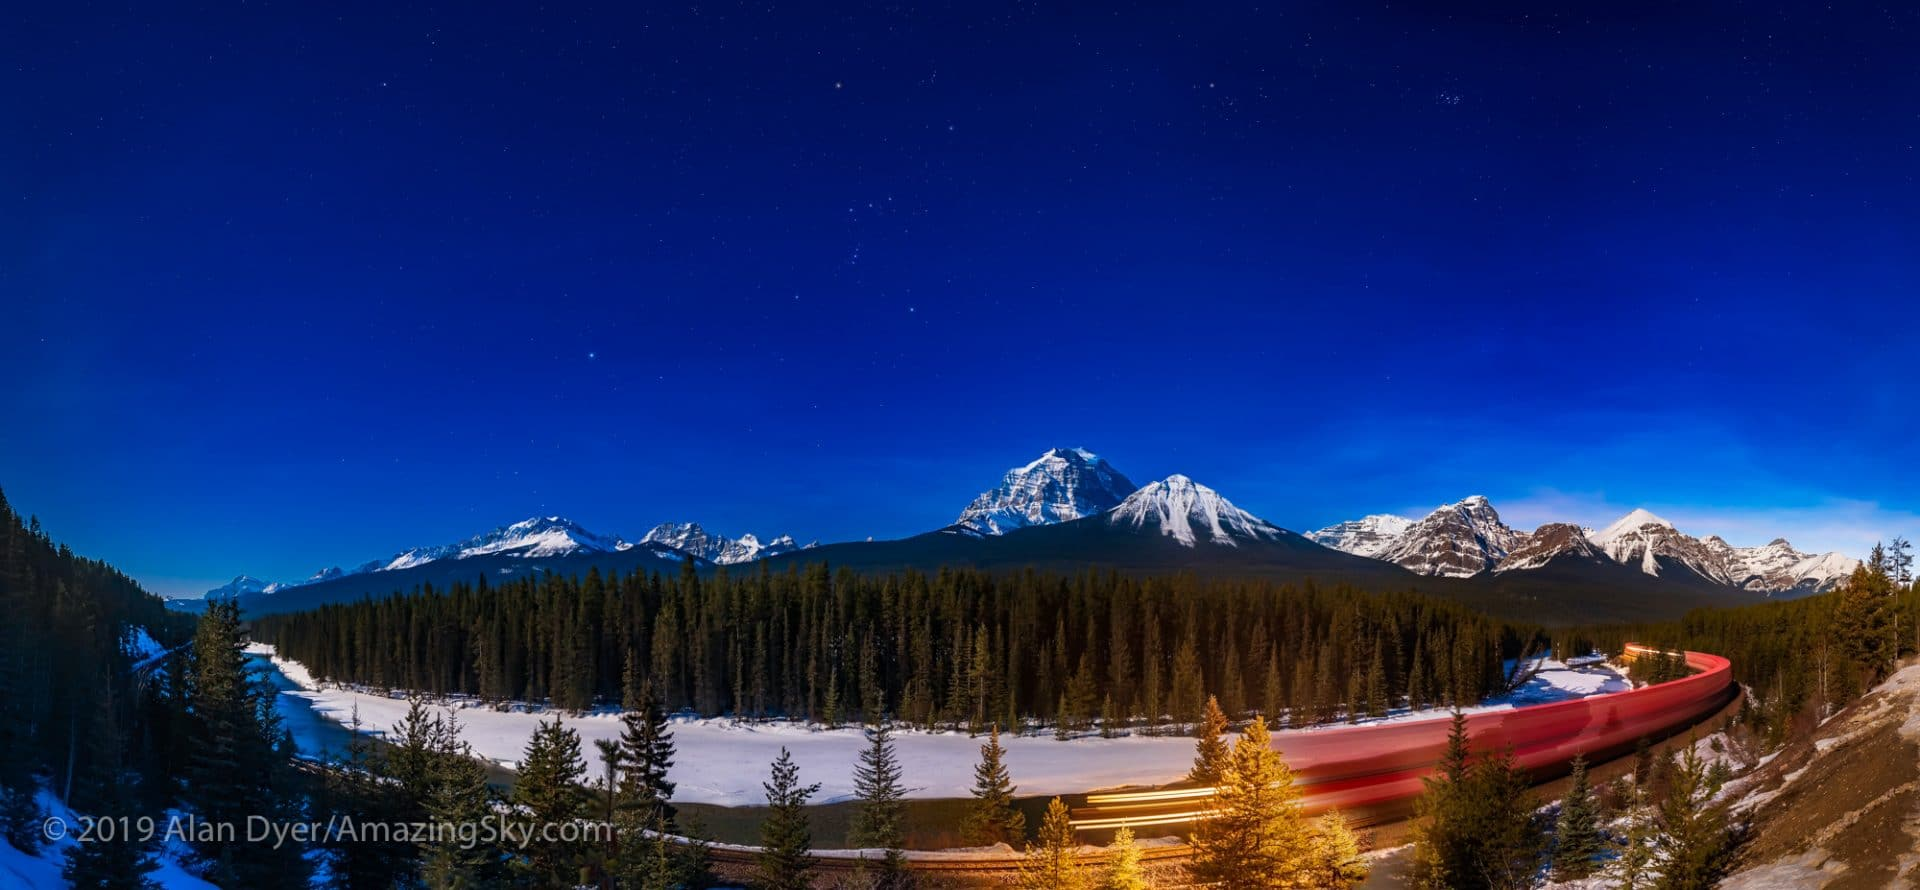 Alan Dyer / AmazingSky.com A panorama of Morant's Curve, a famous viewpoint on the Bow River in Banff National Park, with an eastbound train on the CPR tracks under the stars of the winter sky. Illumination is from the 13-day gibbous Moon off frame at left.  Orion is at centre; Sirius and Canis Major at left; and Taurus and the Pleiades at right. The main peak at centre is Mount Temple; the peaks at right are the ones around Lake Louise.  I shot this March 19, 2019 at the start of the evening, from the new viewpoint on the Bow Valley Parkway. Morant's Curve is named for the famed CPR photographer Nicholas Morant who often shot from here with large format film cameras.  Now, how did I do this? I was shooting multi-segment panoramas at the viewpoint when a train whistle in the distance to the est alerted me to the oncoming train. I started the panorama segment shooting at the left, and just by good luck the train was in front of me at centre when I hit the central segment. I continued to the right to catch the blurred rest of the train snaking around Morant's Curve. It took some adjustments of the masks in the panorama segments to get the train to blend well from segment to segment. This was stitched with PTGui as Photoshop would not handle this well. PTGui allows adjusting the masks on the individual segments. The equirectangular projection used stretches out and distorts the constellations a bit at top.  Each segment is 8 seconds at f/3.2 and ISO 800 with the 24mm Sigma Art lens and Nikon D750 in portrait orientation. I added a Luminar Orton glow effect to the ground for artistic effect.